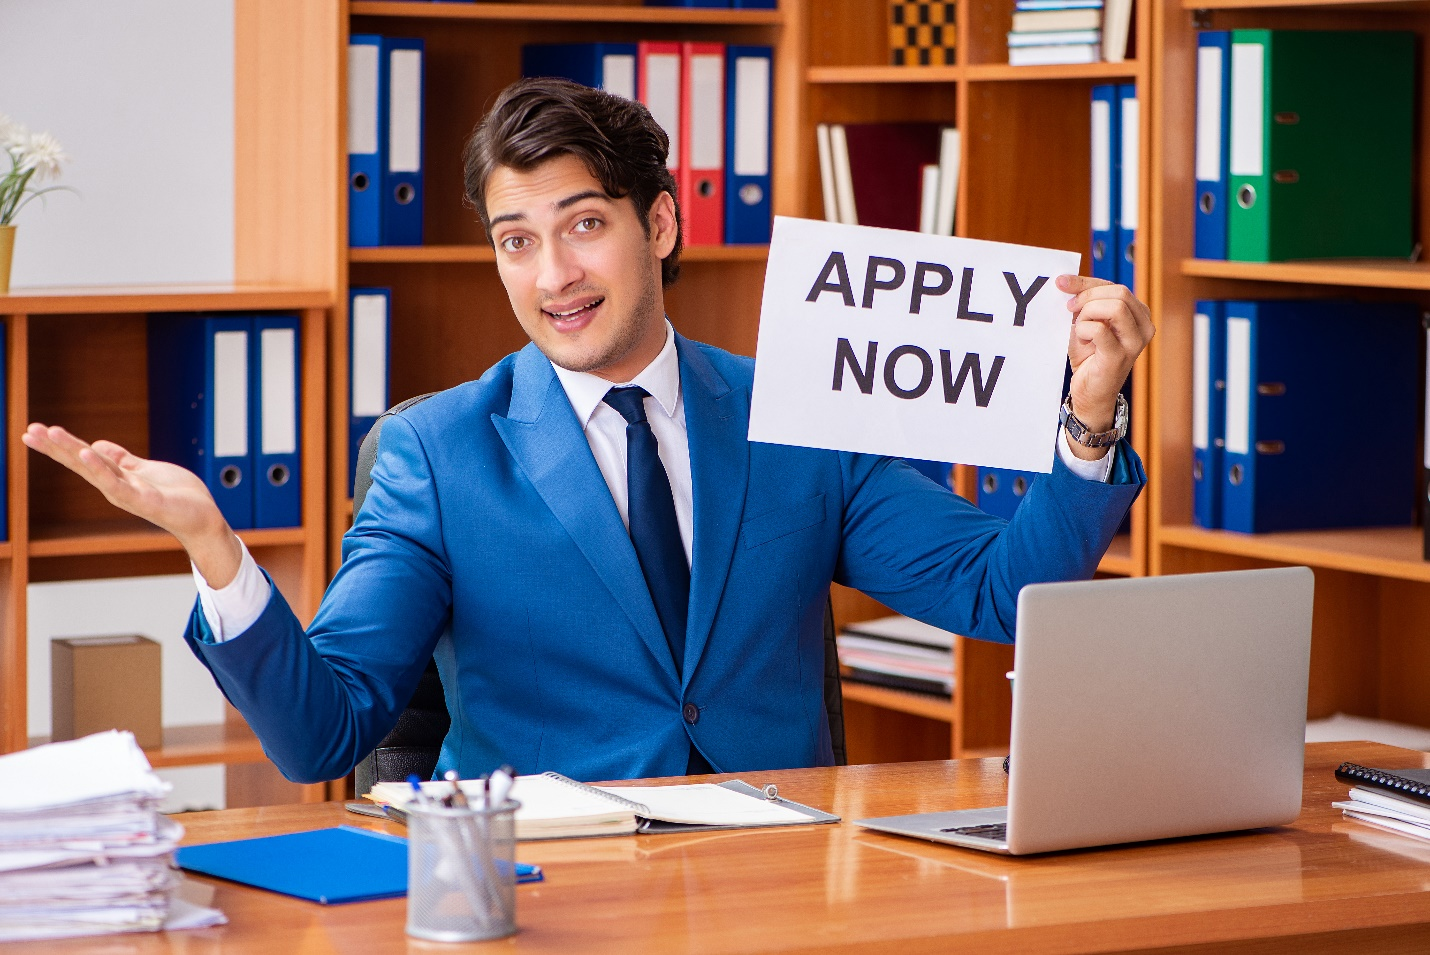 A recruiter holding an 'Apply Now' sign